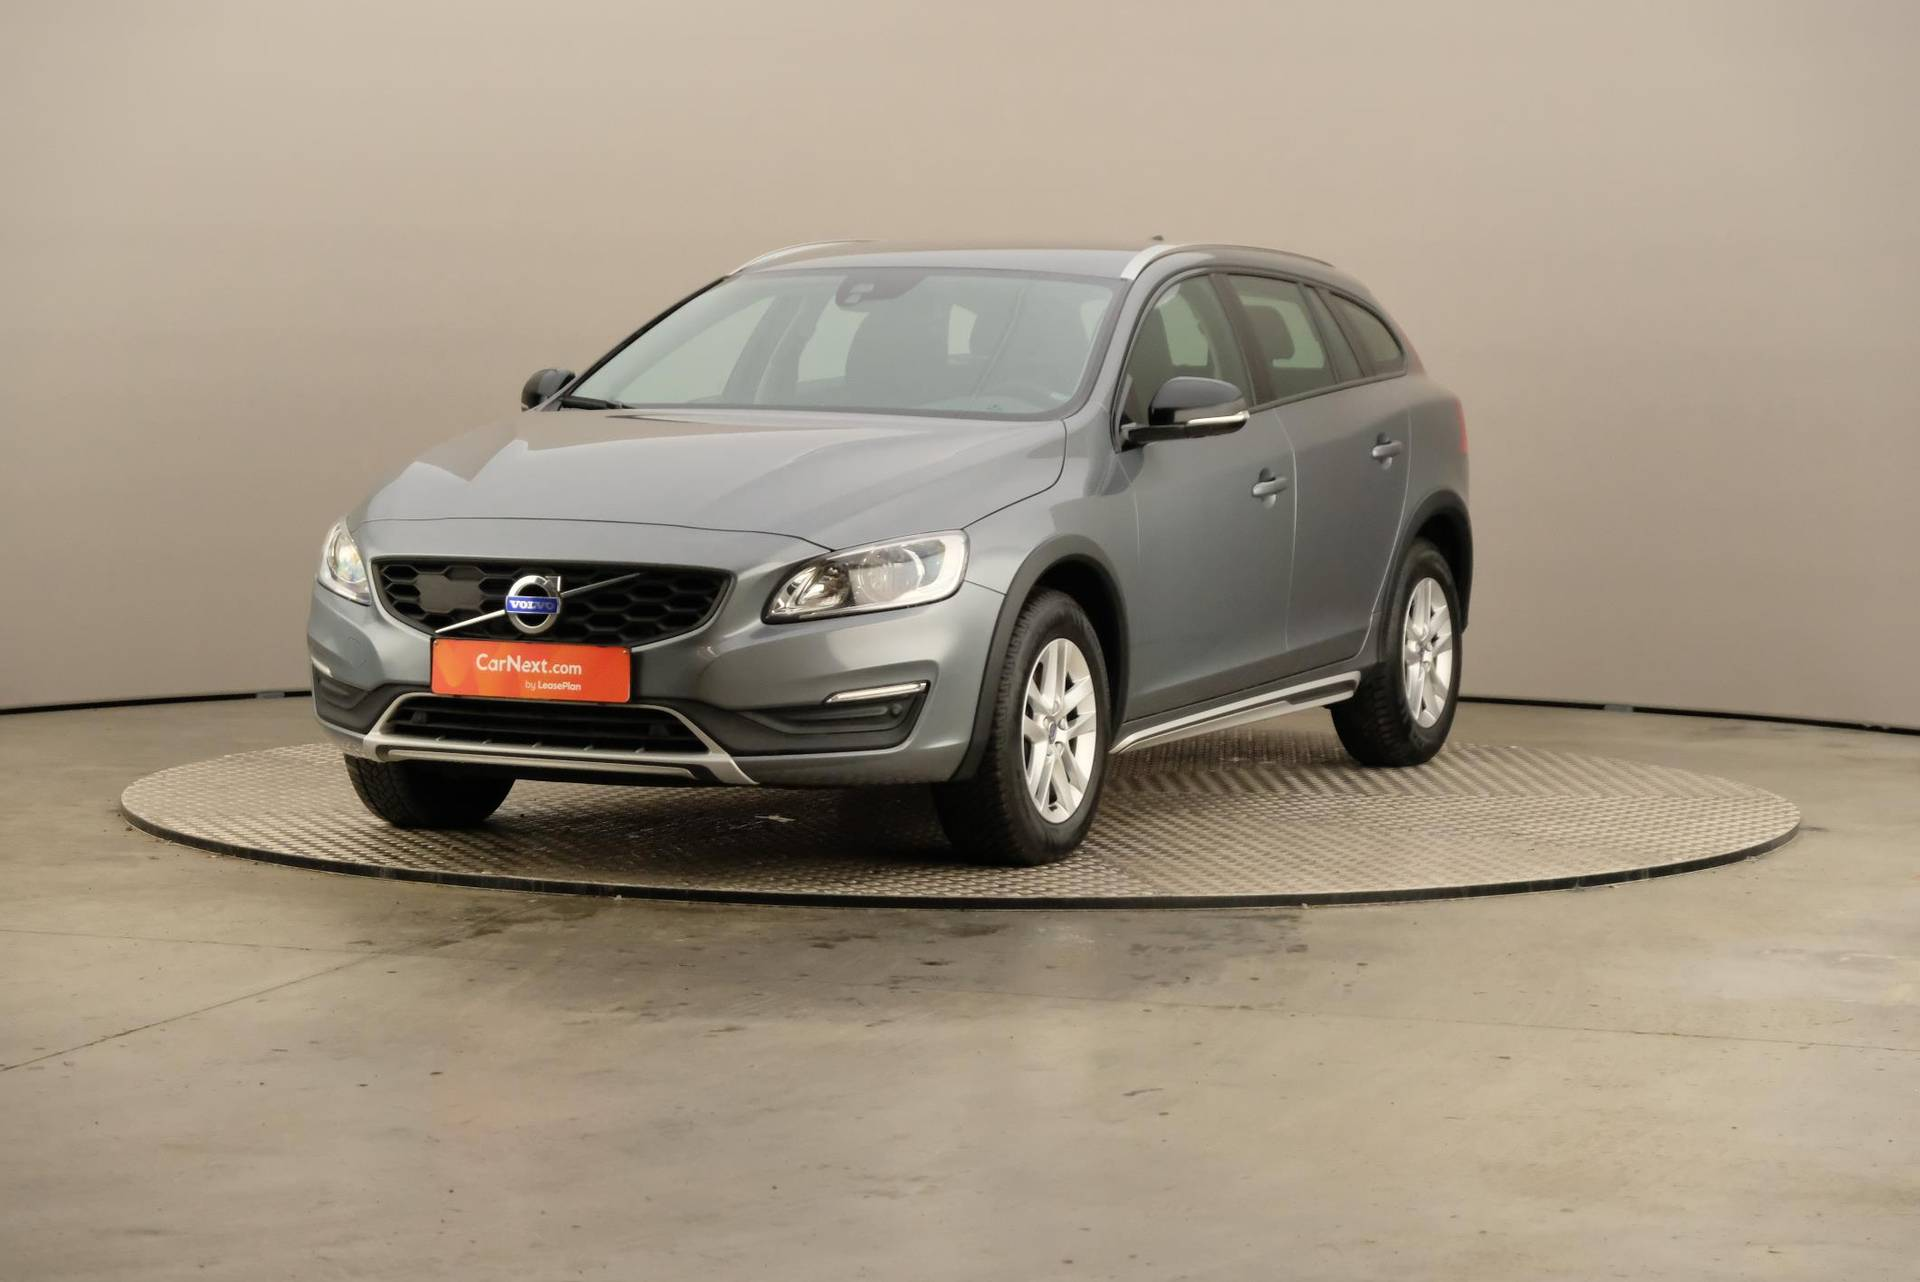 Volvo V60 2.0 D3 Kinetic Geartronic GPS PDC CRUISE CONTROL, 360-image34